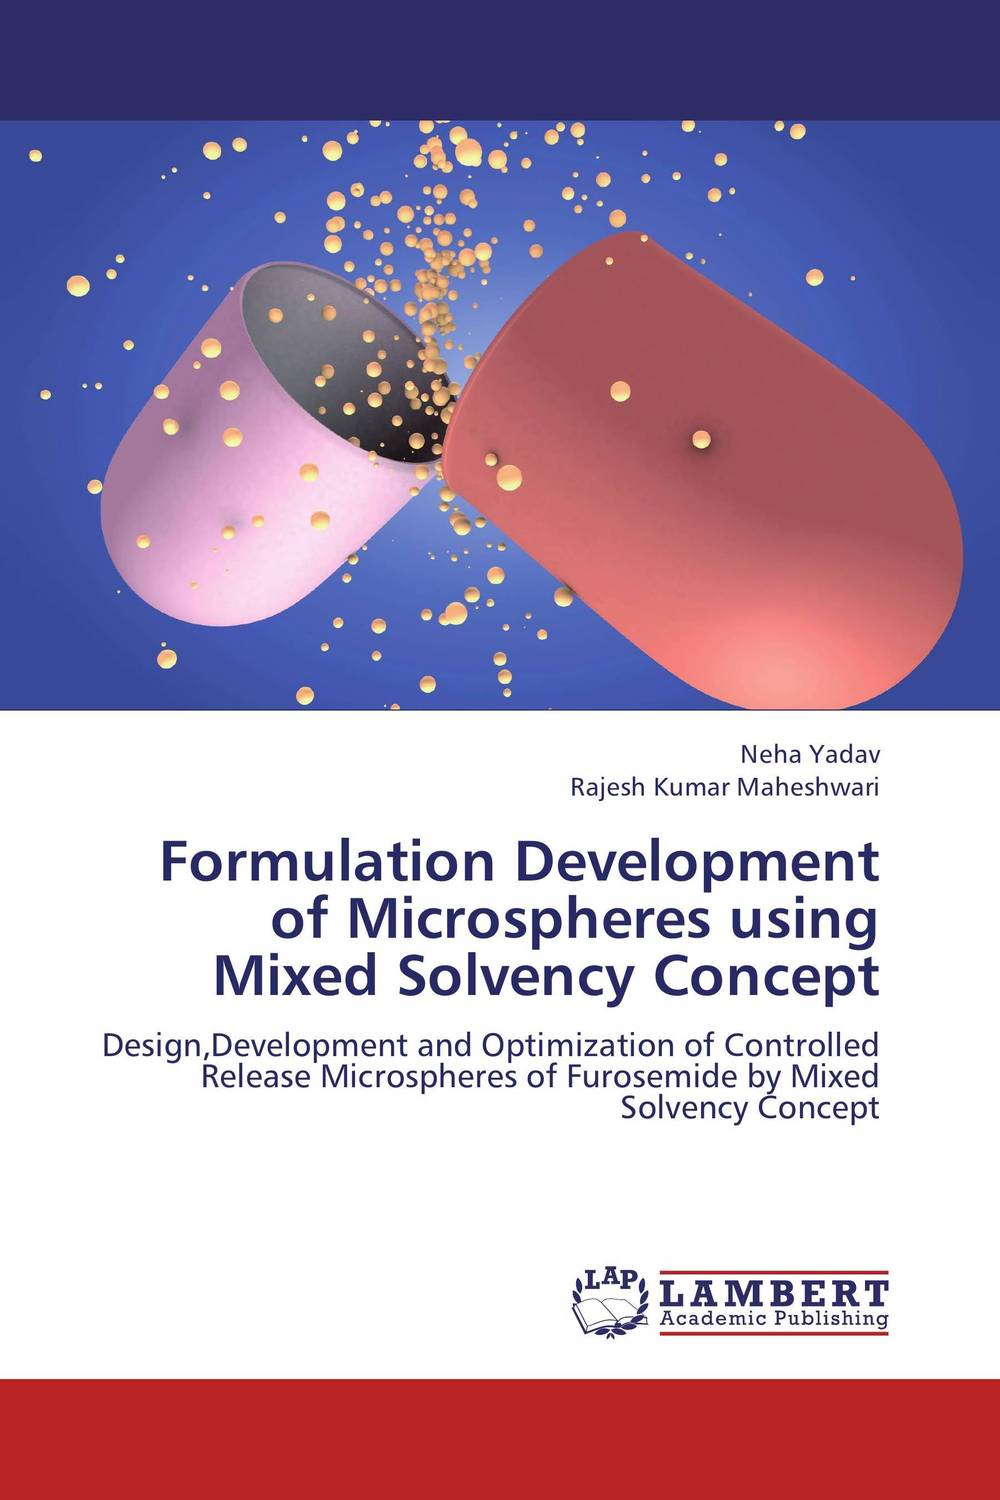 Formulation Development of Microspheres using Mixed Solvency Concept david buckham executive s guide to solvency ii